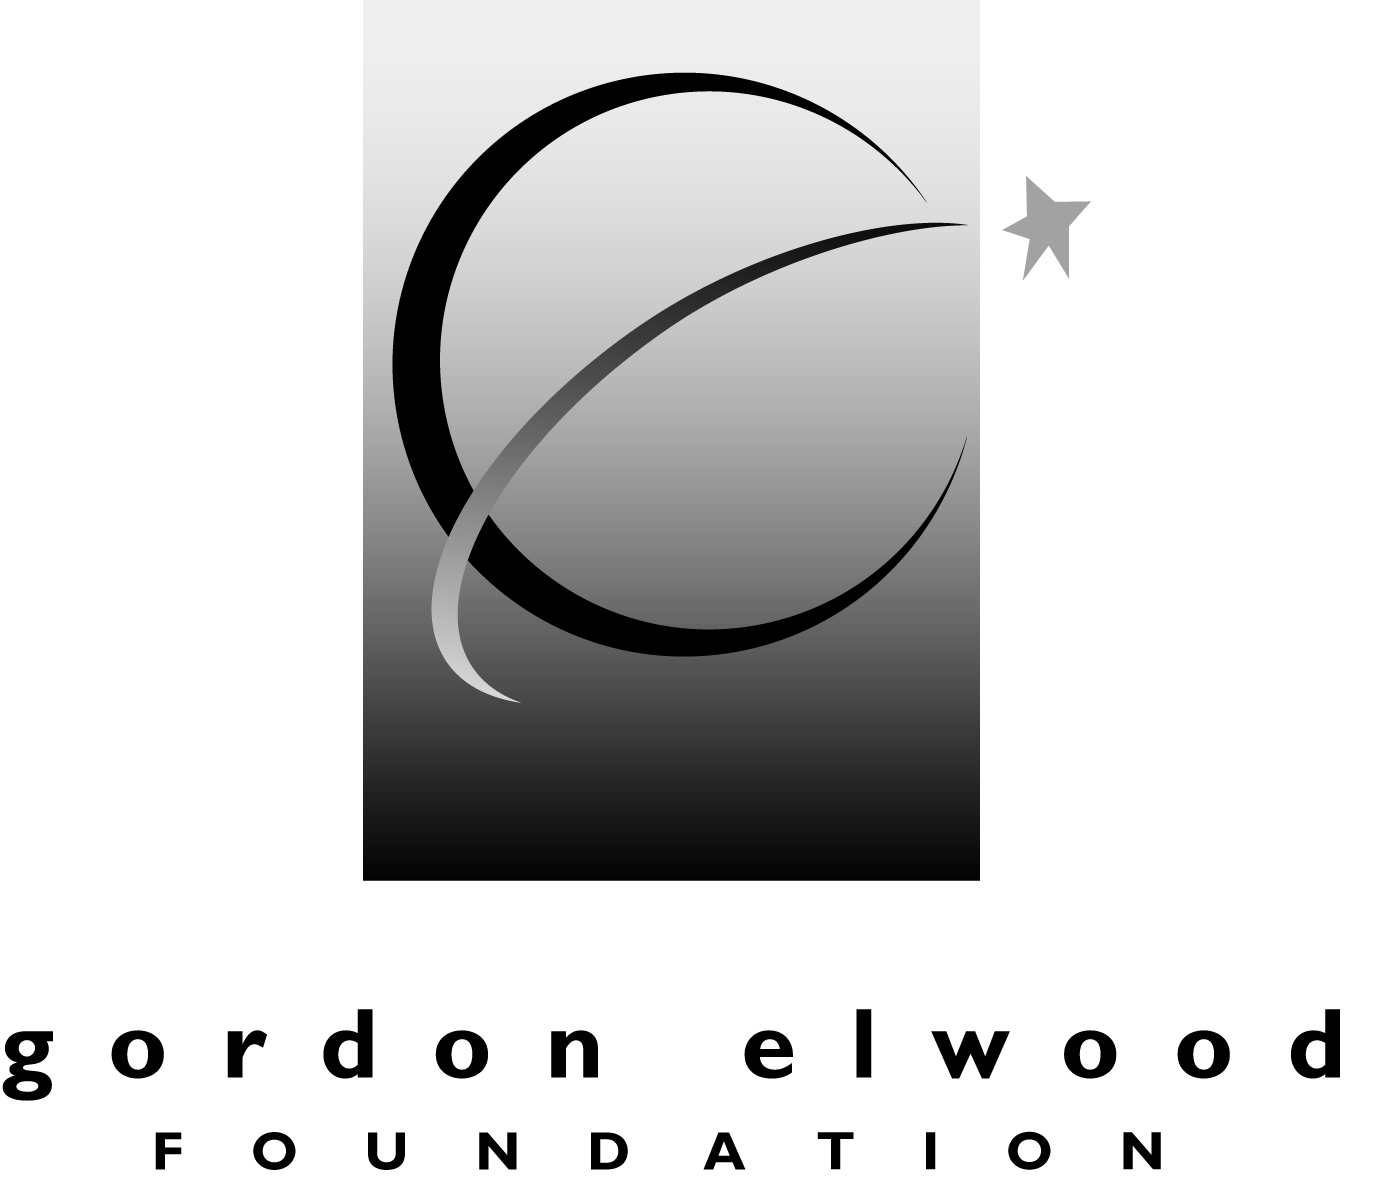 The Gordon Elwood Foundation